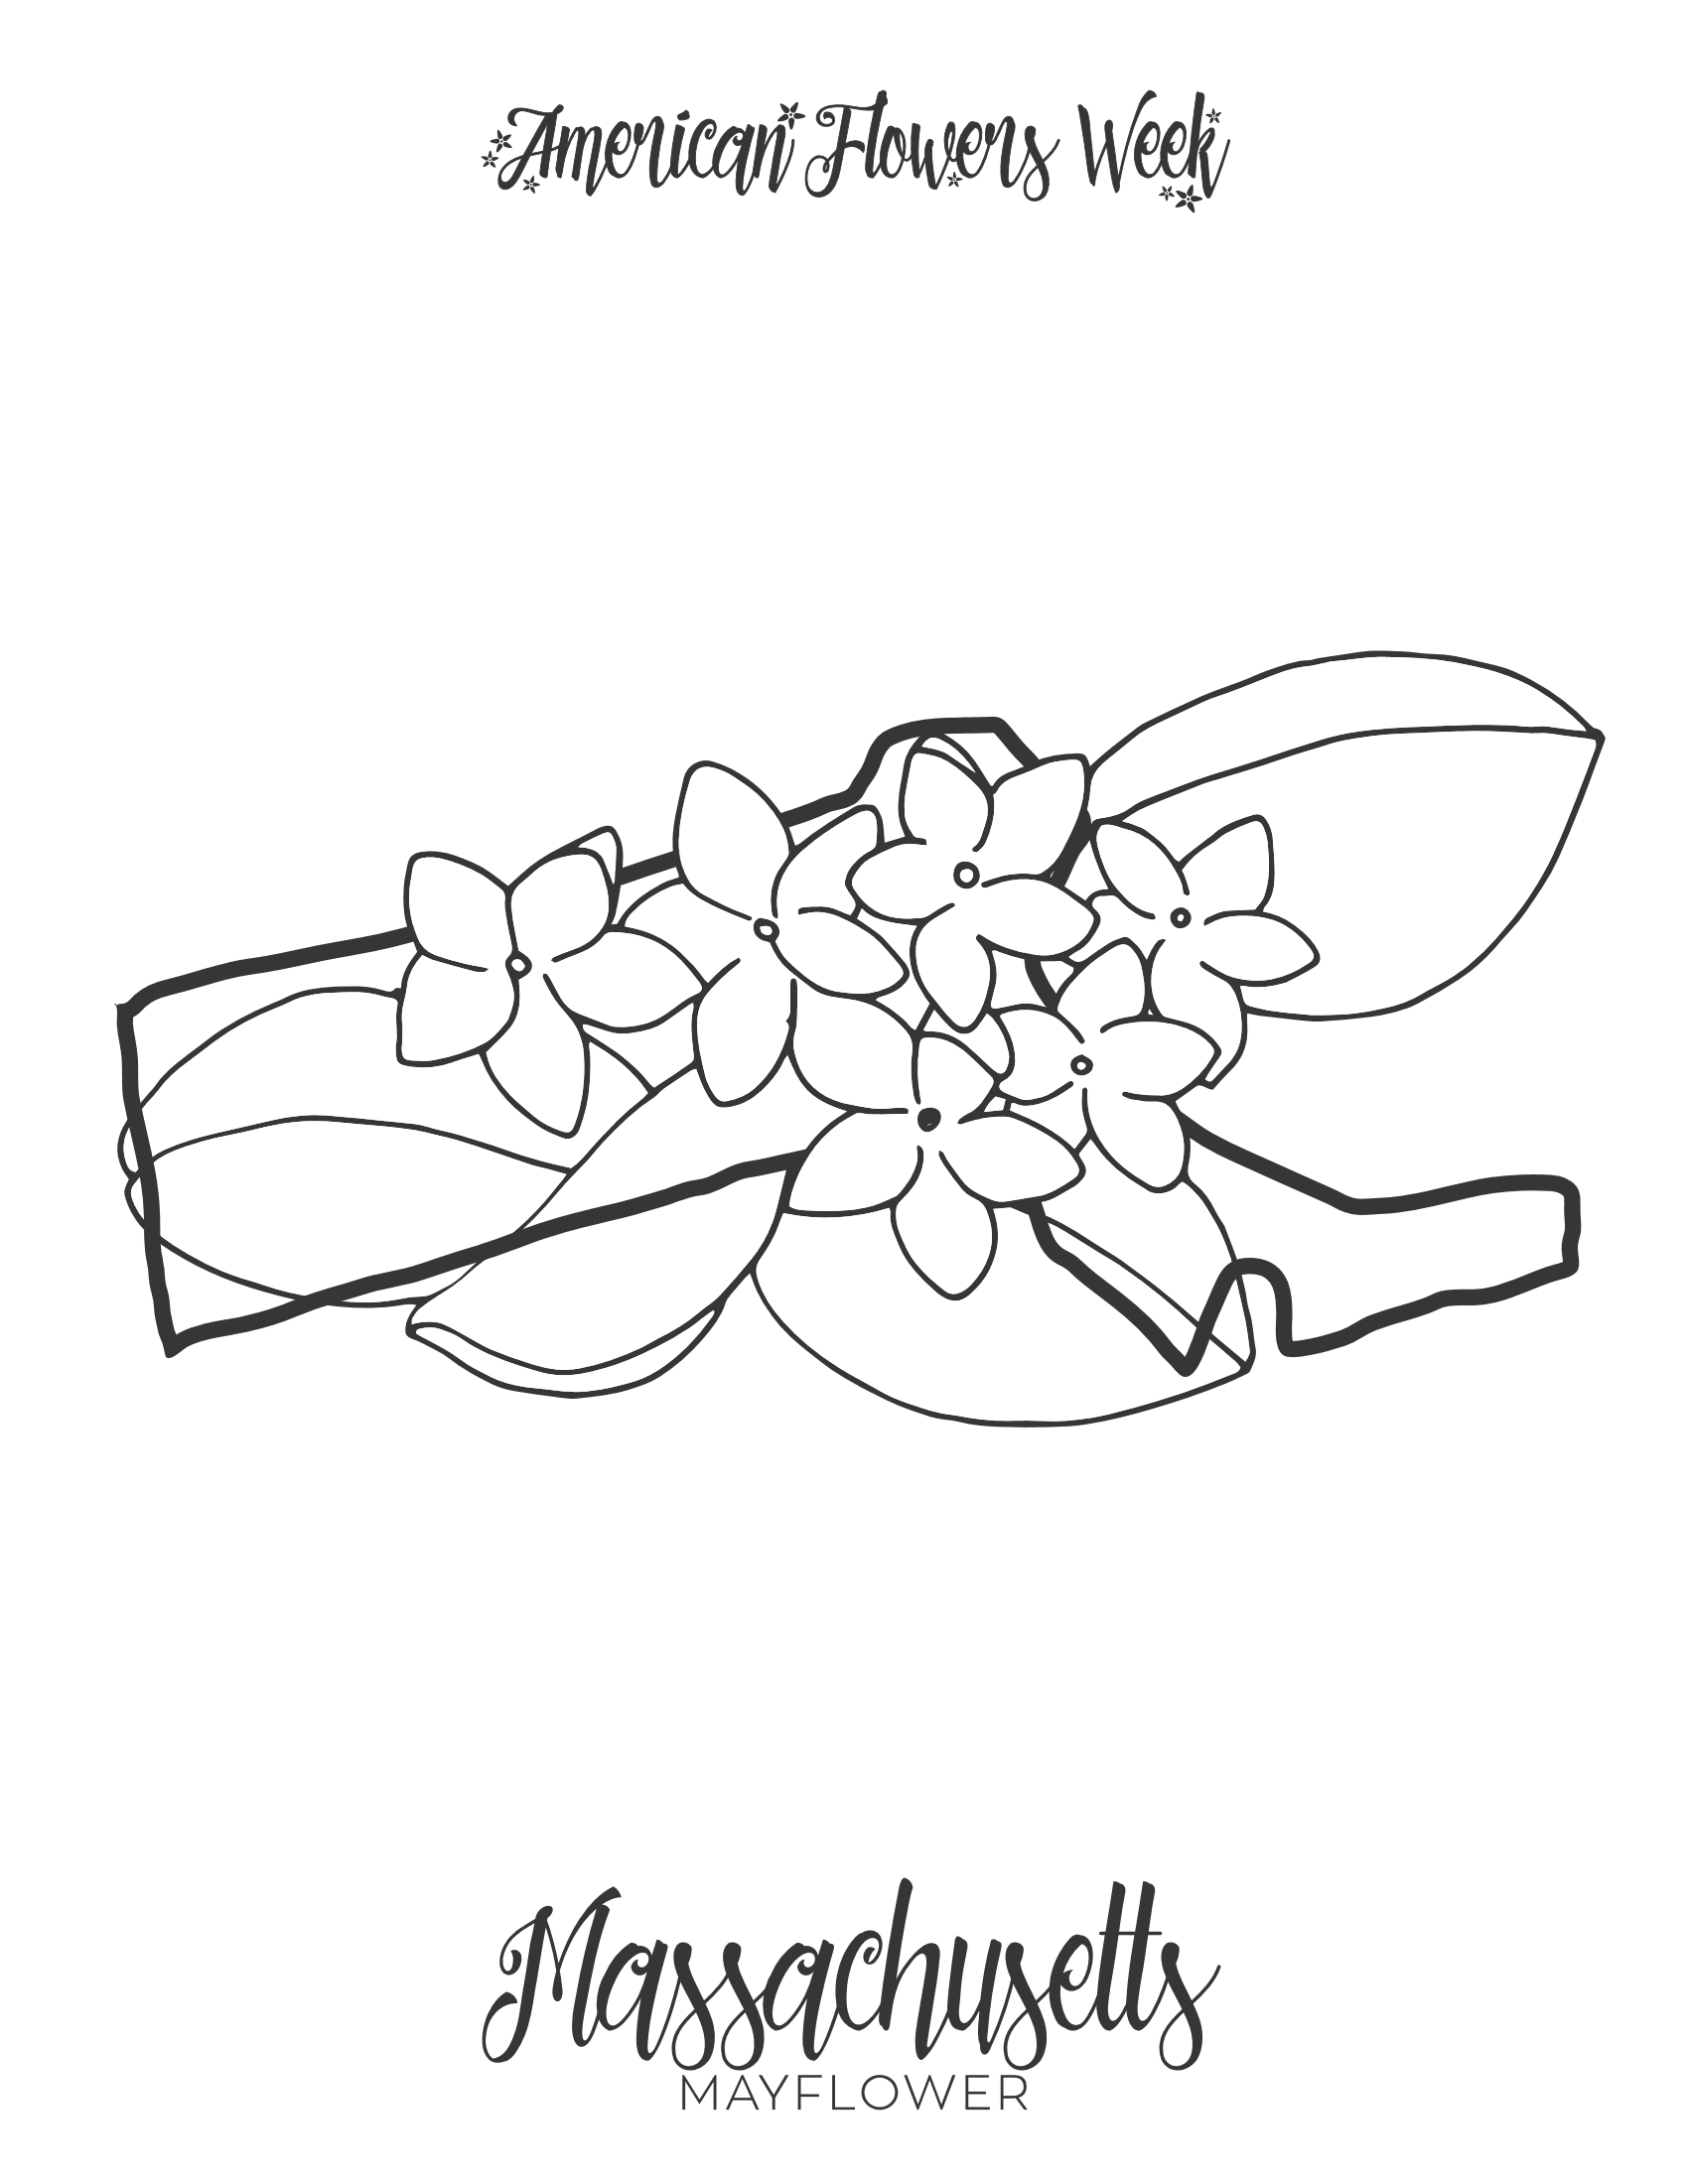 kentucky state flower 50 state flowers free coloring pages american flowers week kentucky flower state